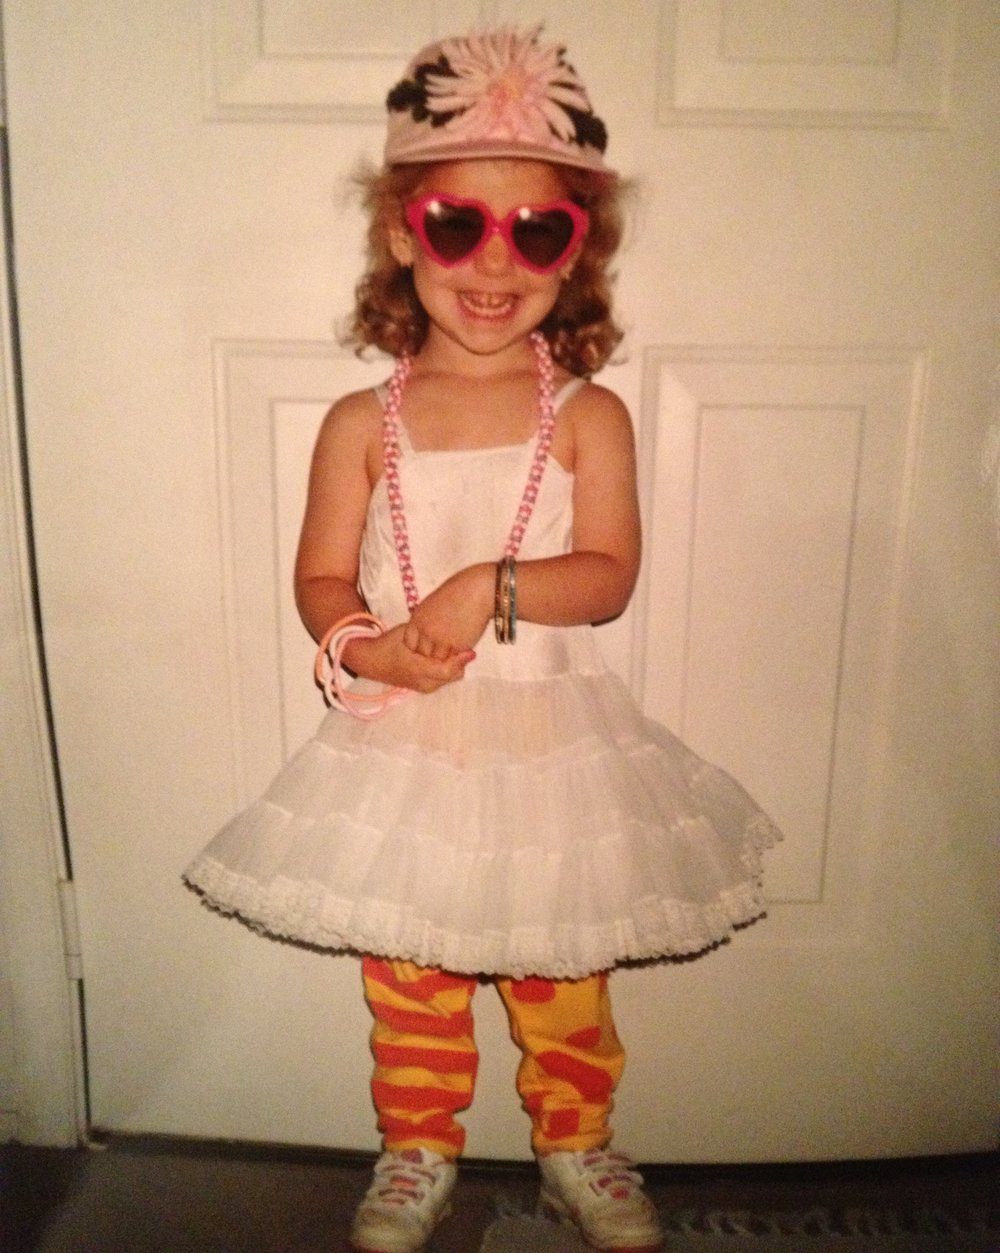 Obsessed with clothes & dress-up since the beginning